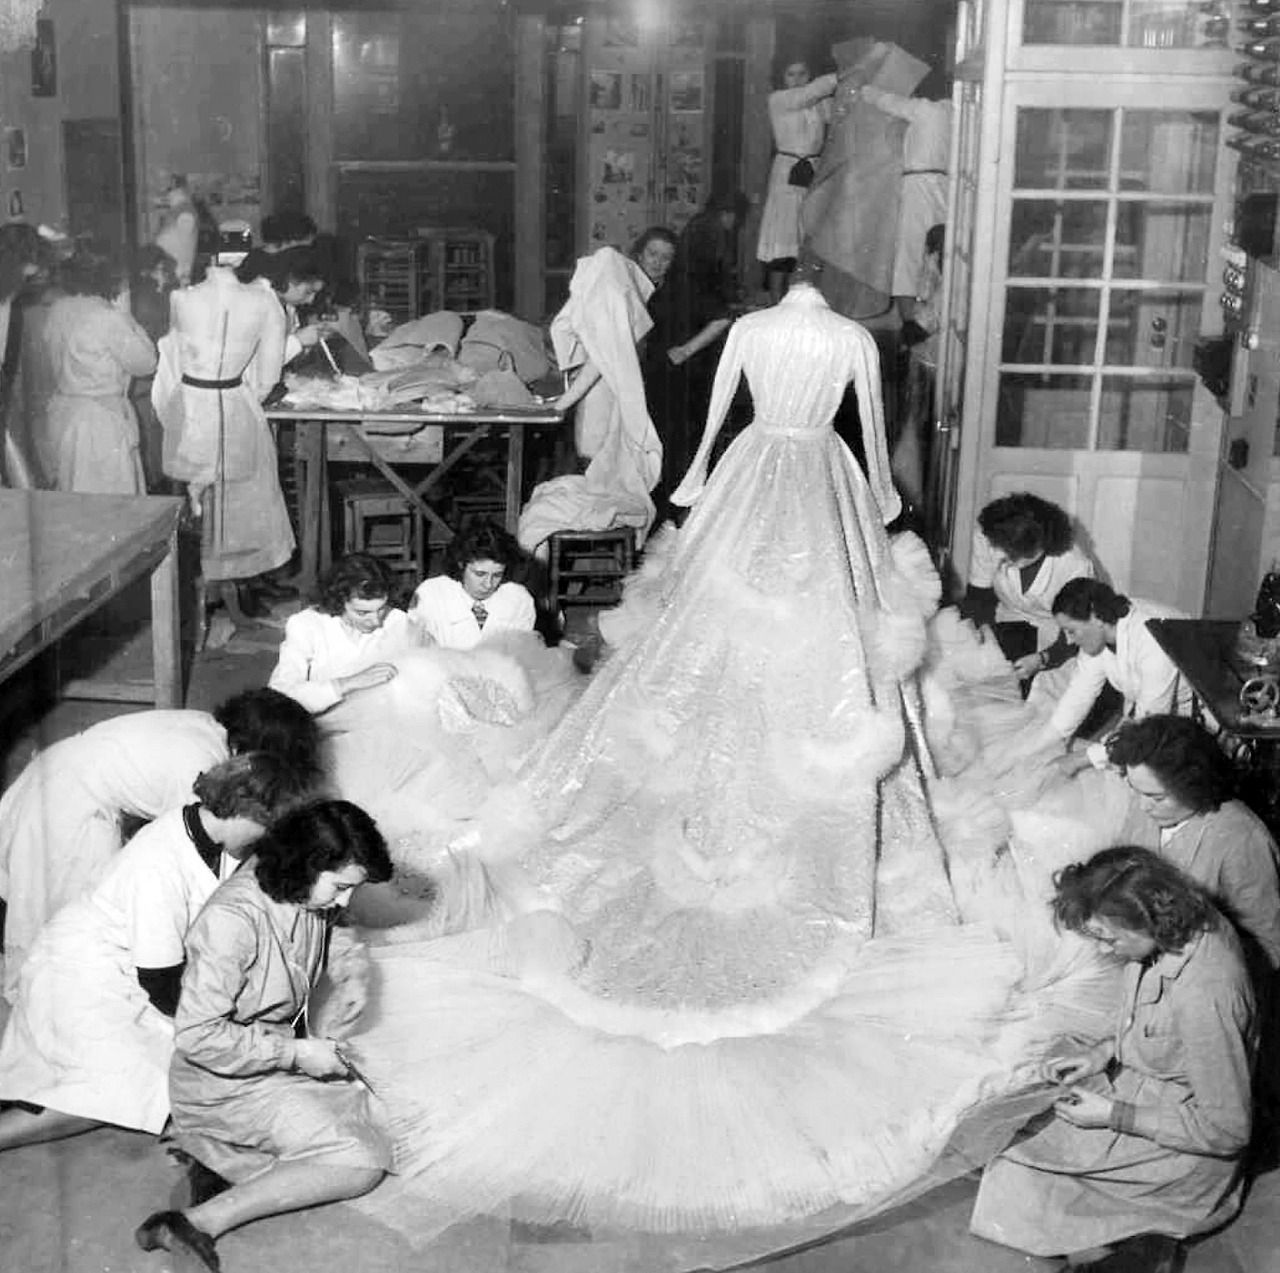 Christian Dior Wedding Gowns: Seamstresses At Work On The Wedding Dress For Princess